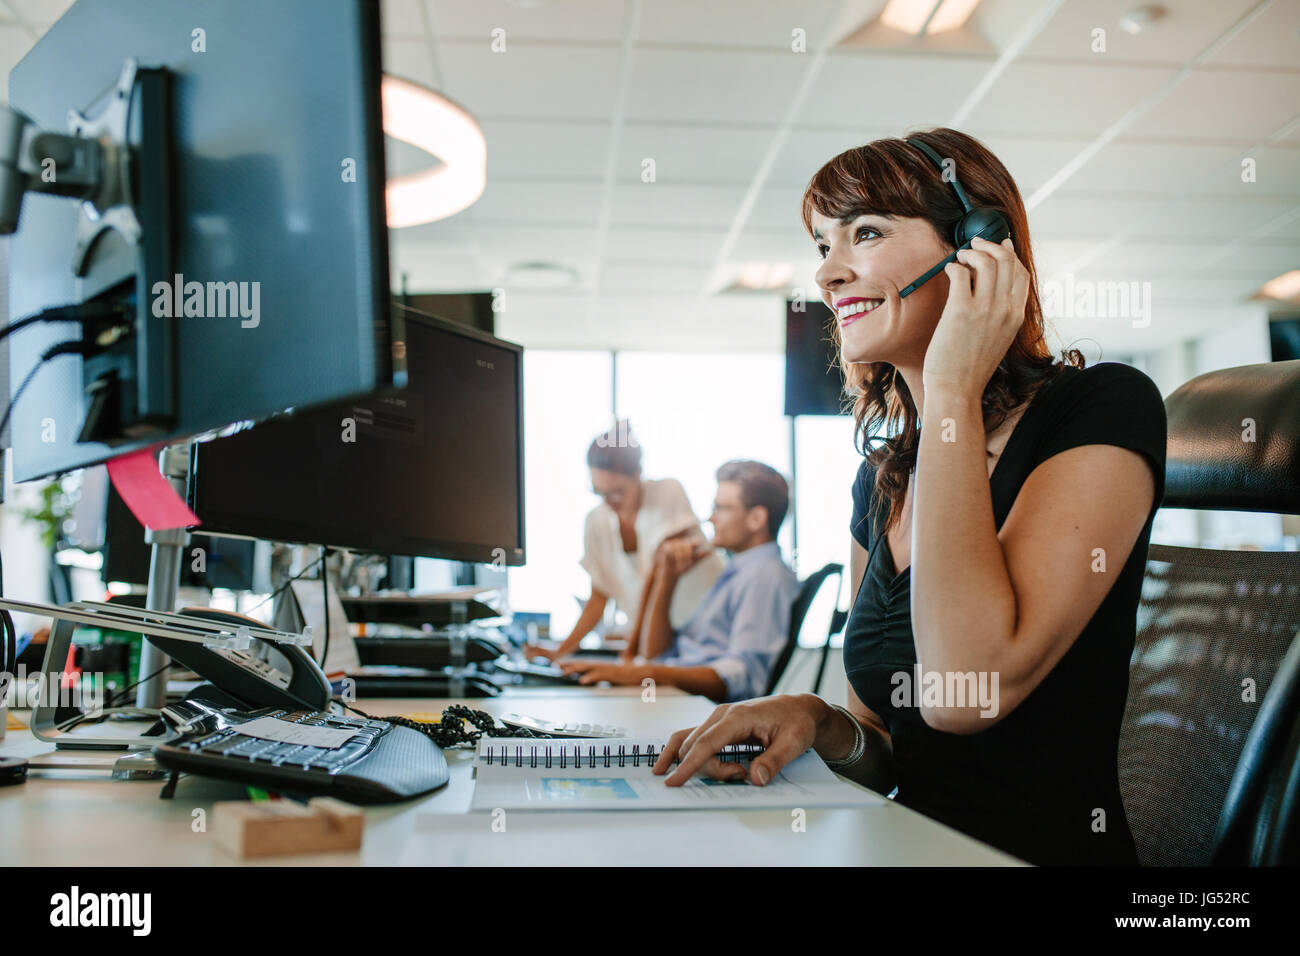 Casual businesswoman working at desk à l'aide d'ordinateur et le casque dans le bureau. L'accent Photo Stock